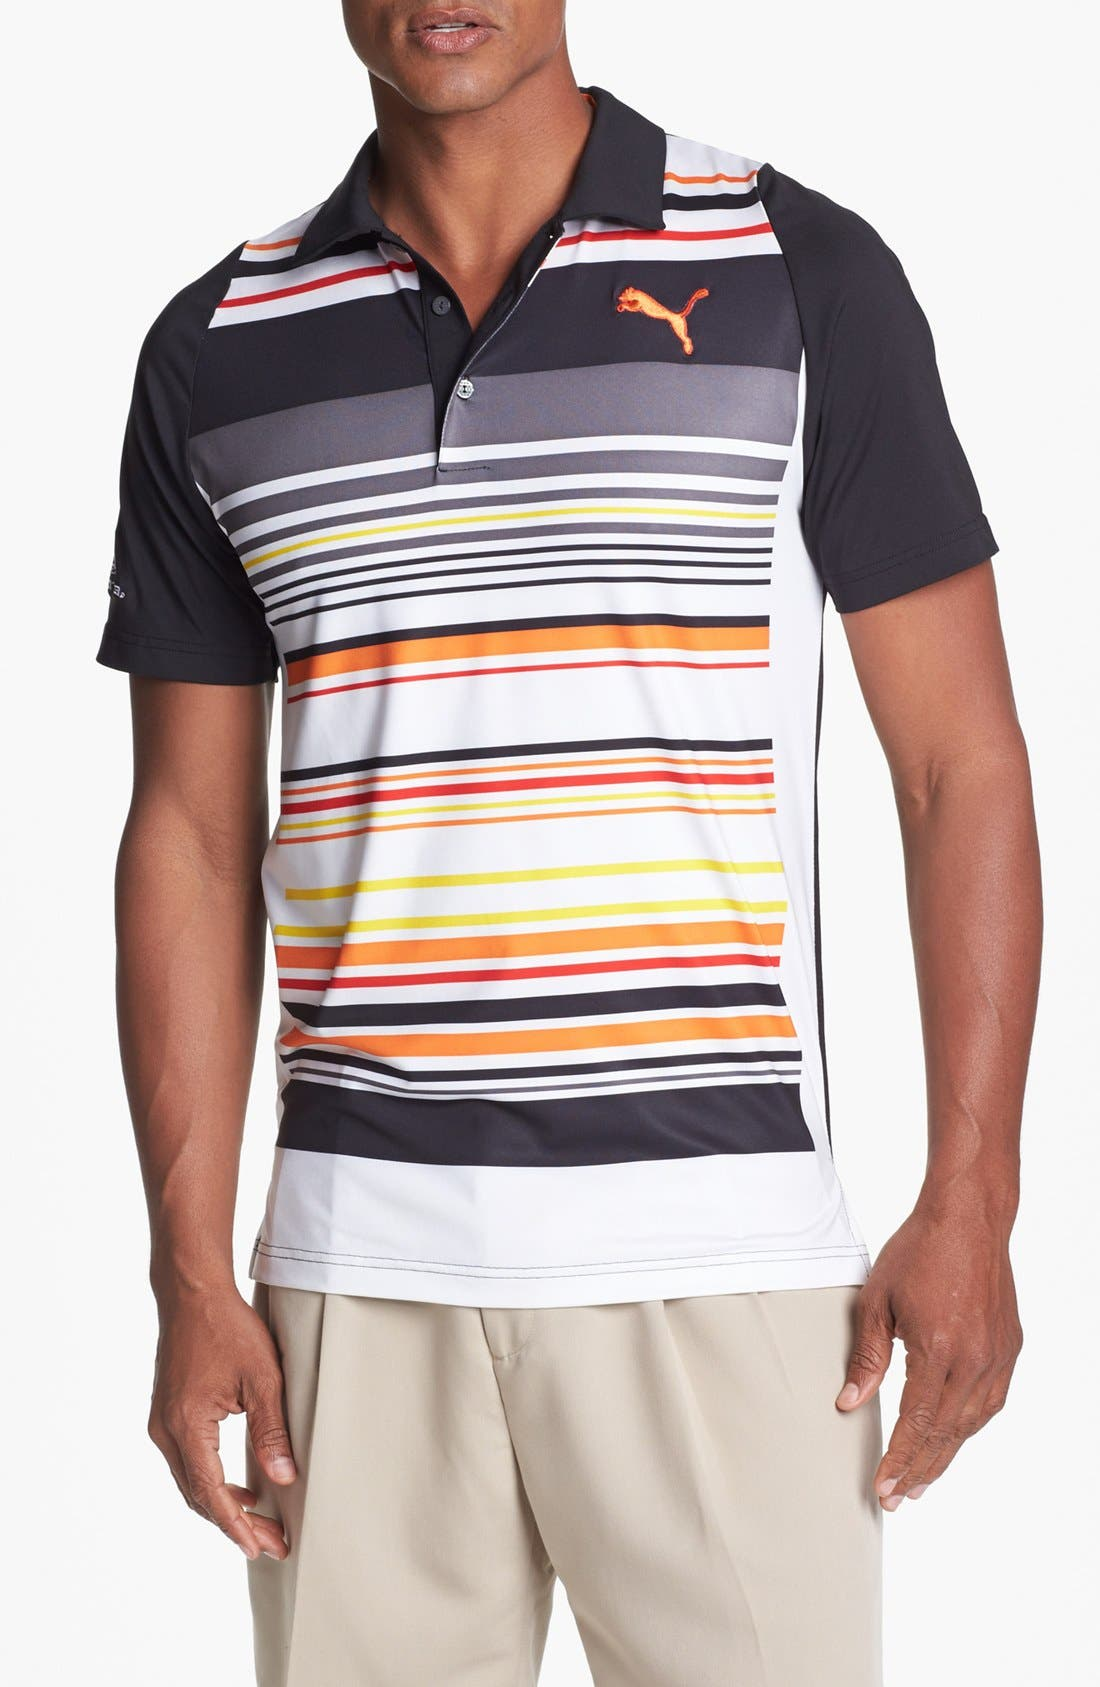 Alternate Image 1 Selected - PUMA GOLF 'Duo-Swing' Stripe Polo